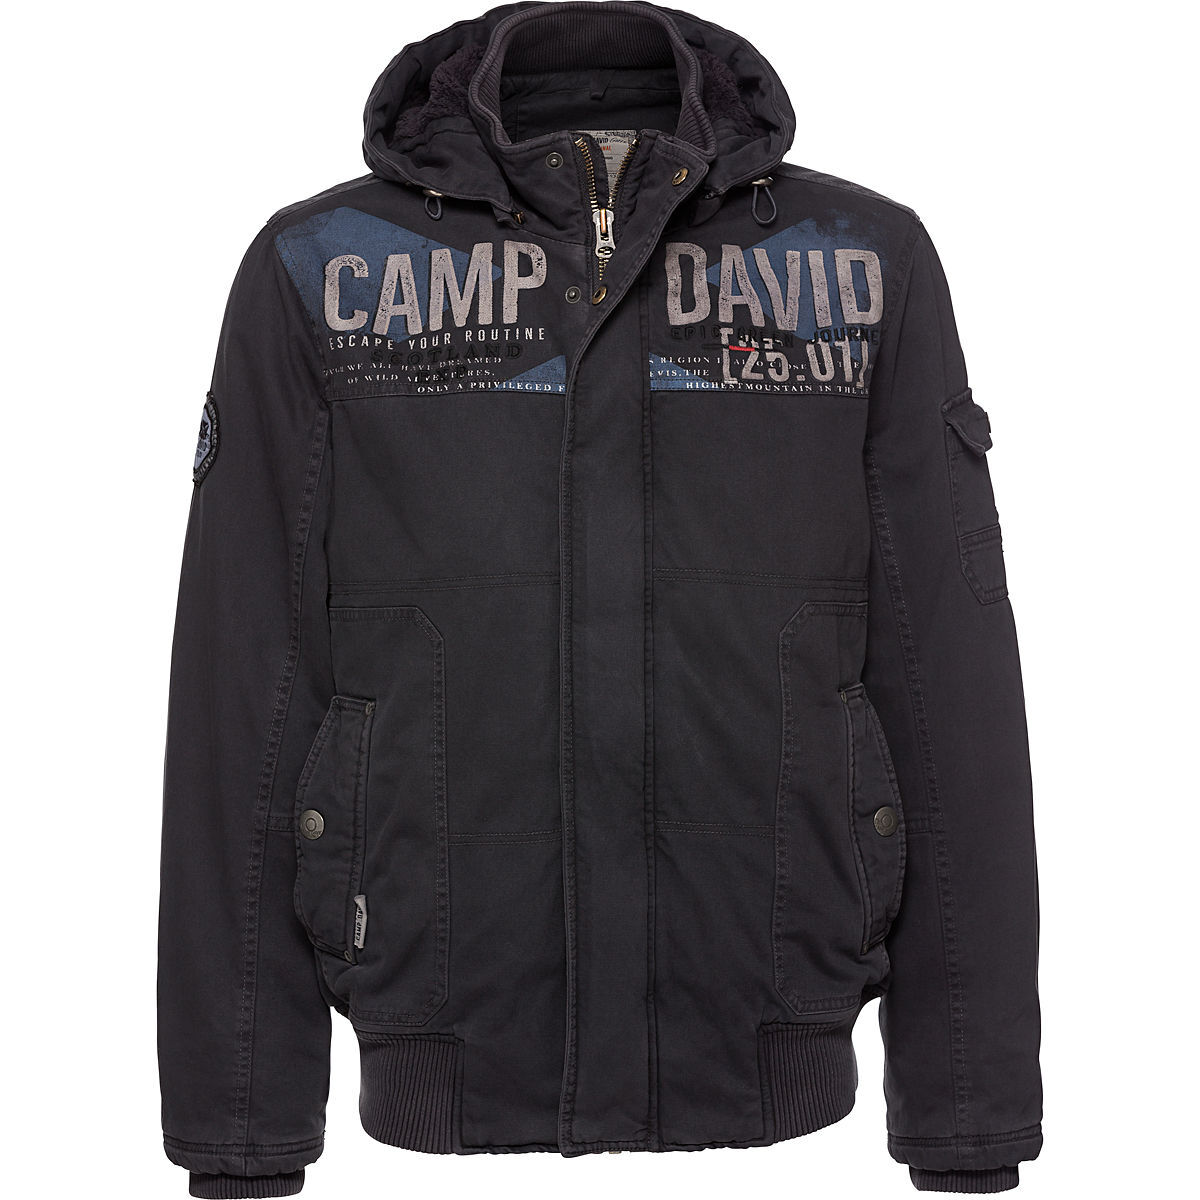 camp david herren jacke mit kapuze anthrazit s karstadt. Black Bedroom Furniture Sets. Home Design Ideas